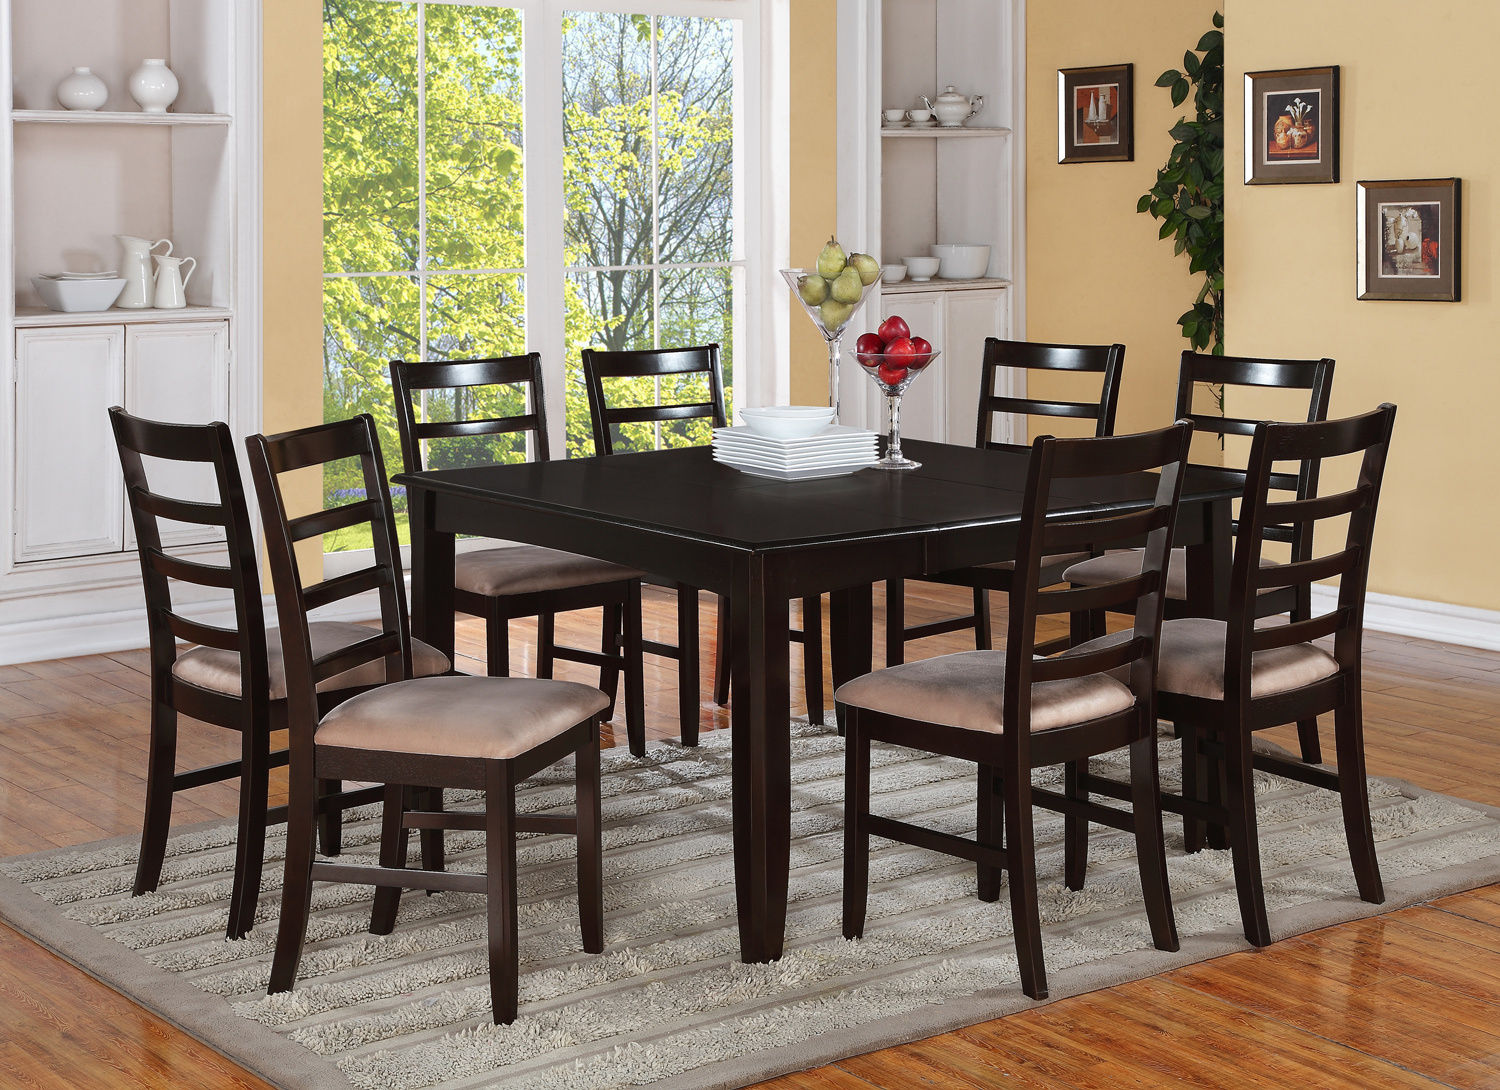 square dining table for 6 photo - 6